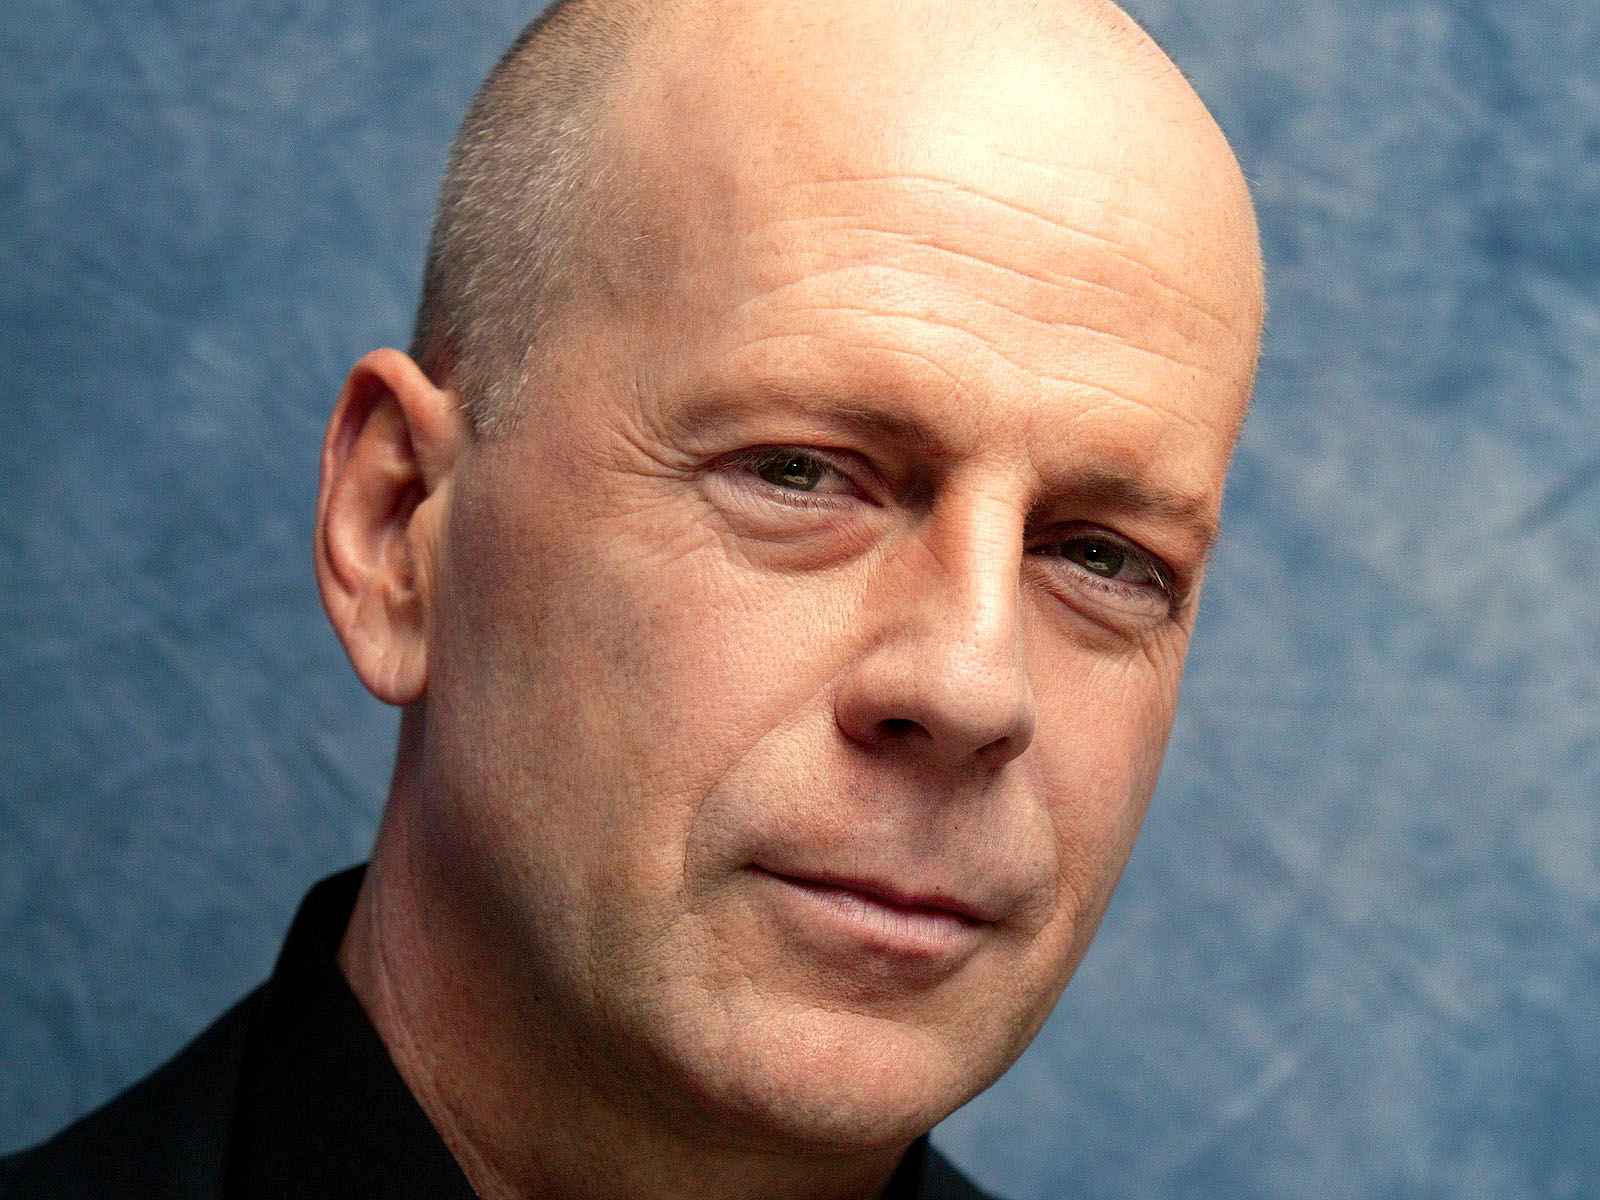 http://4.bp.blogspot.com/-WXG3jr3-jhM/TtcJH052ThI/AAAAAAAAAeg/Ha92LvDsCa8/s1600/Bruce-Willis-pictures-desktop-Wallpapers-HD-photo-images-18.jpg